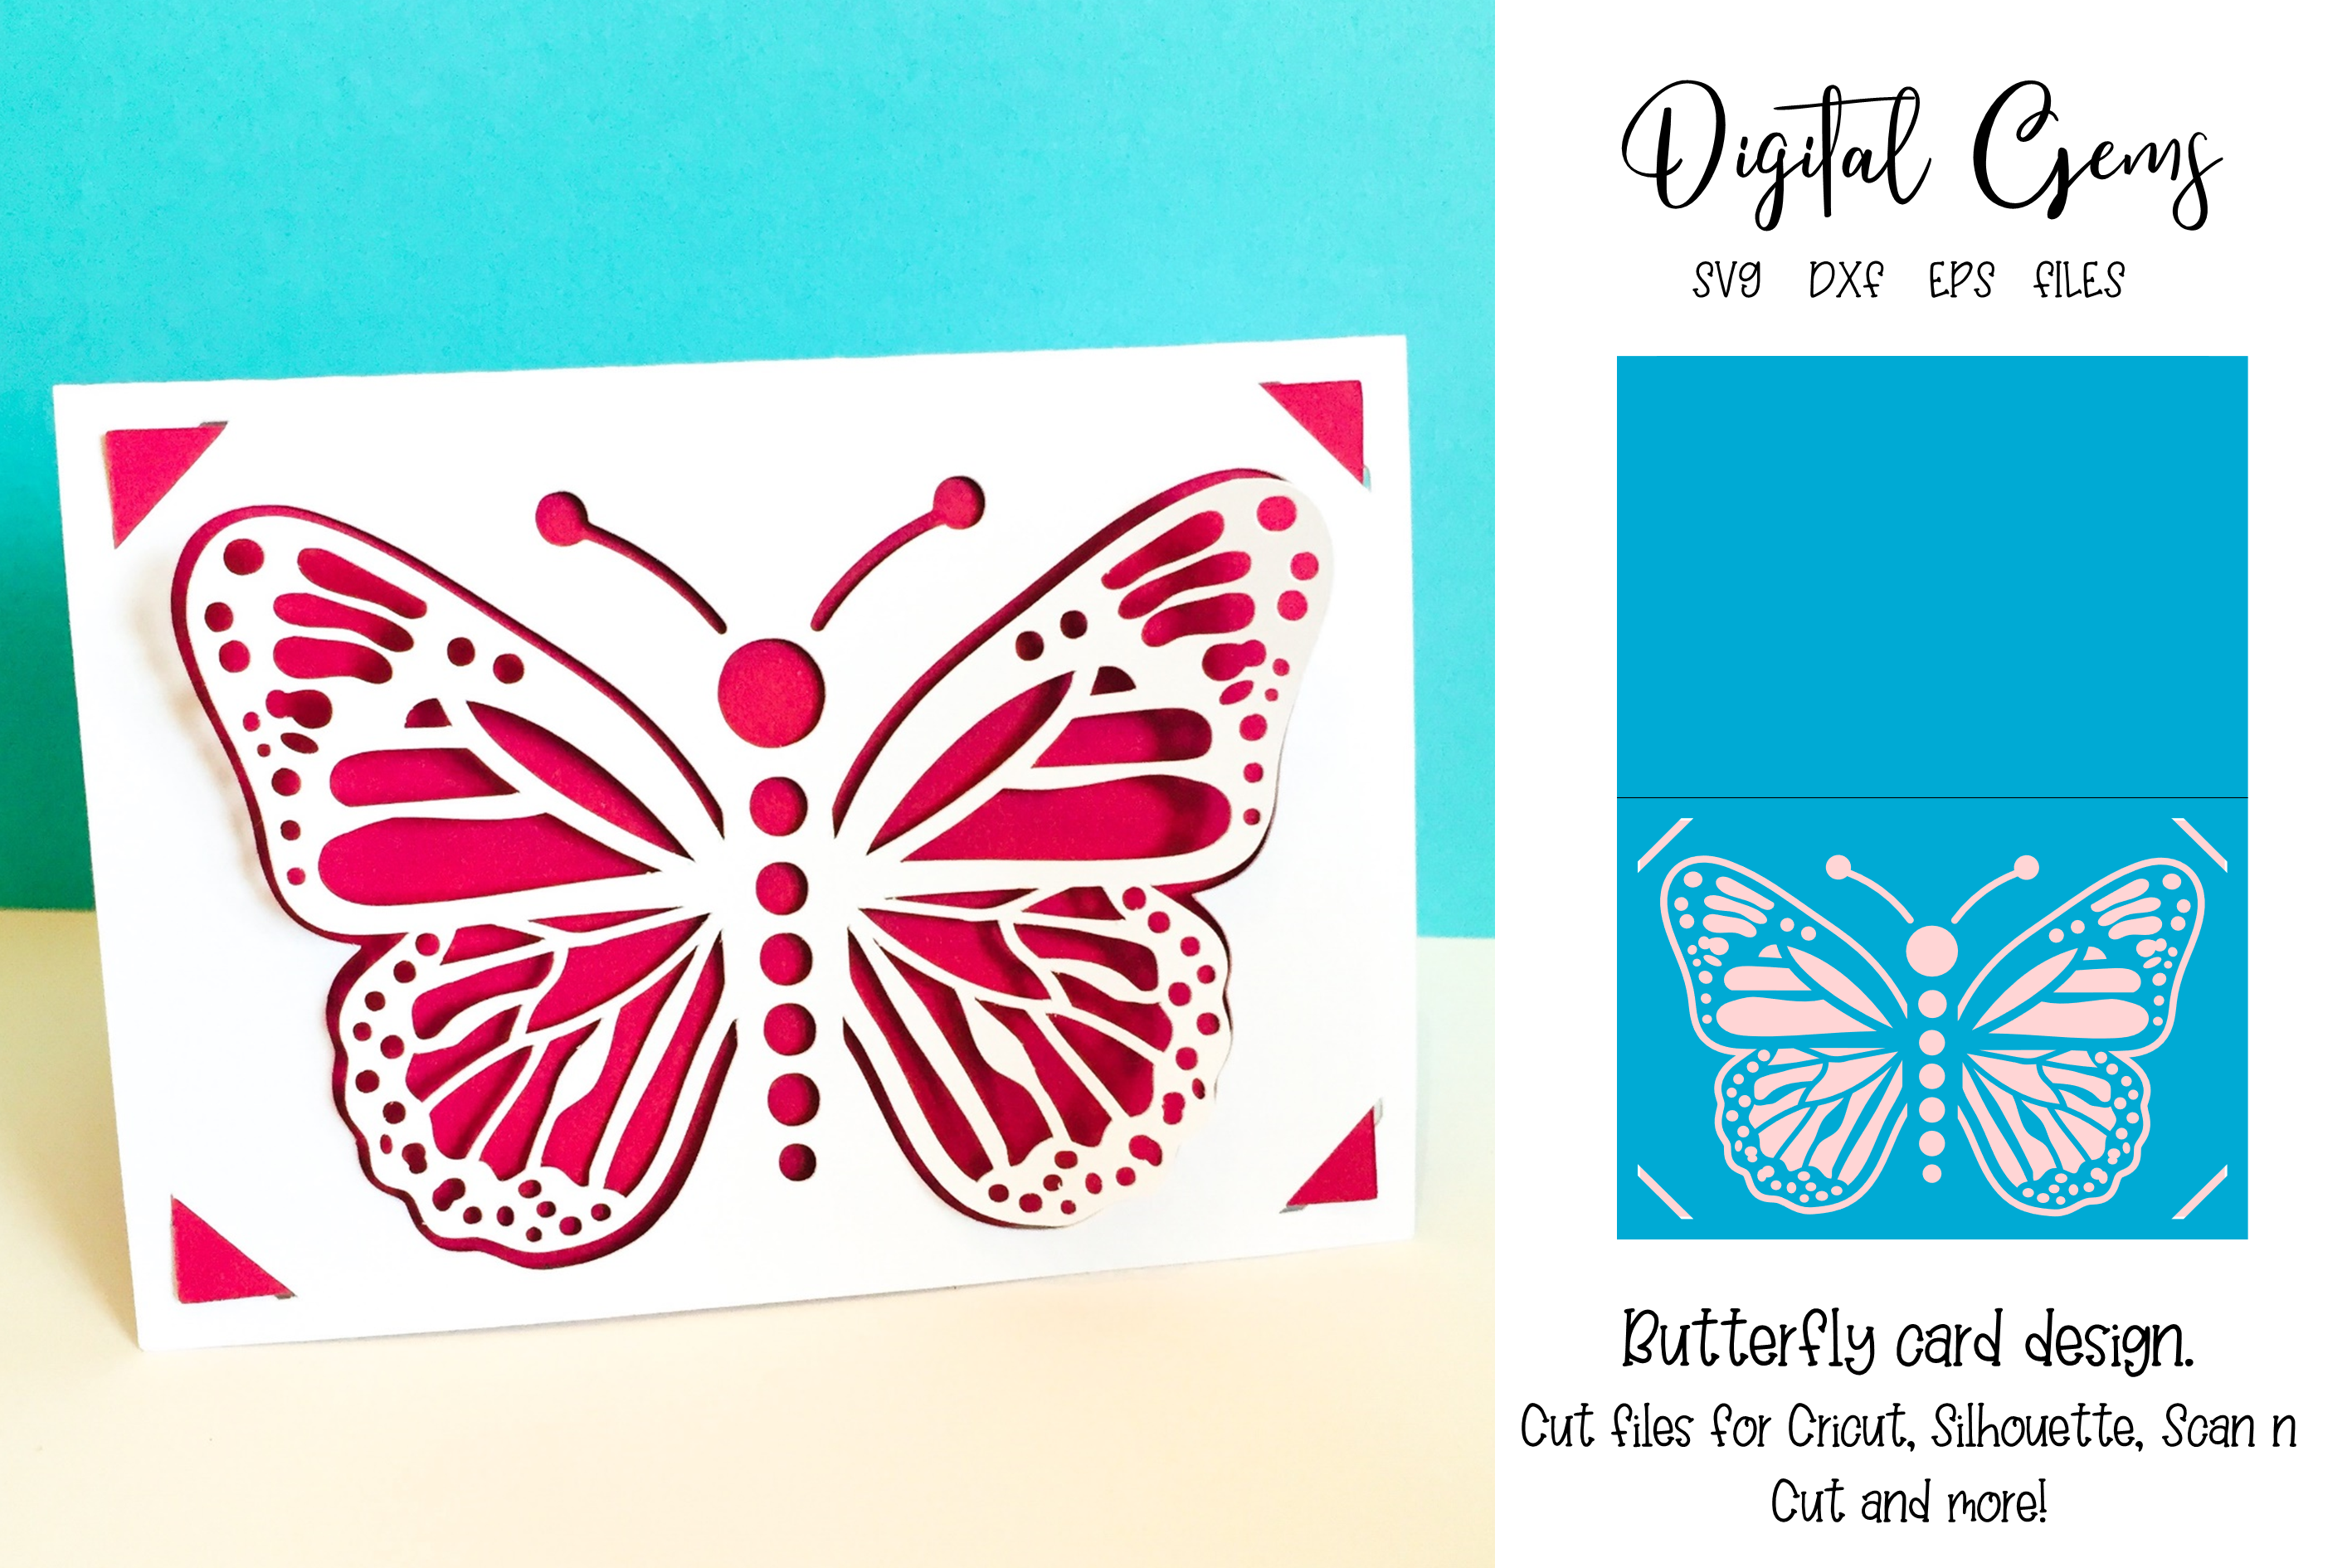 Download Free Butterfly Card Design Graphic By Digital Gems Creative Fabrica for Cricut Explore, Silhouette and other cutting machines.